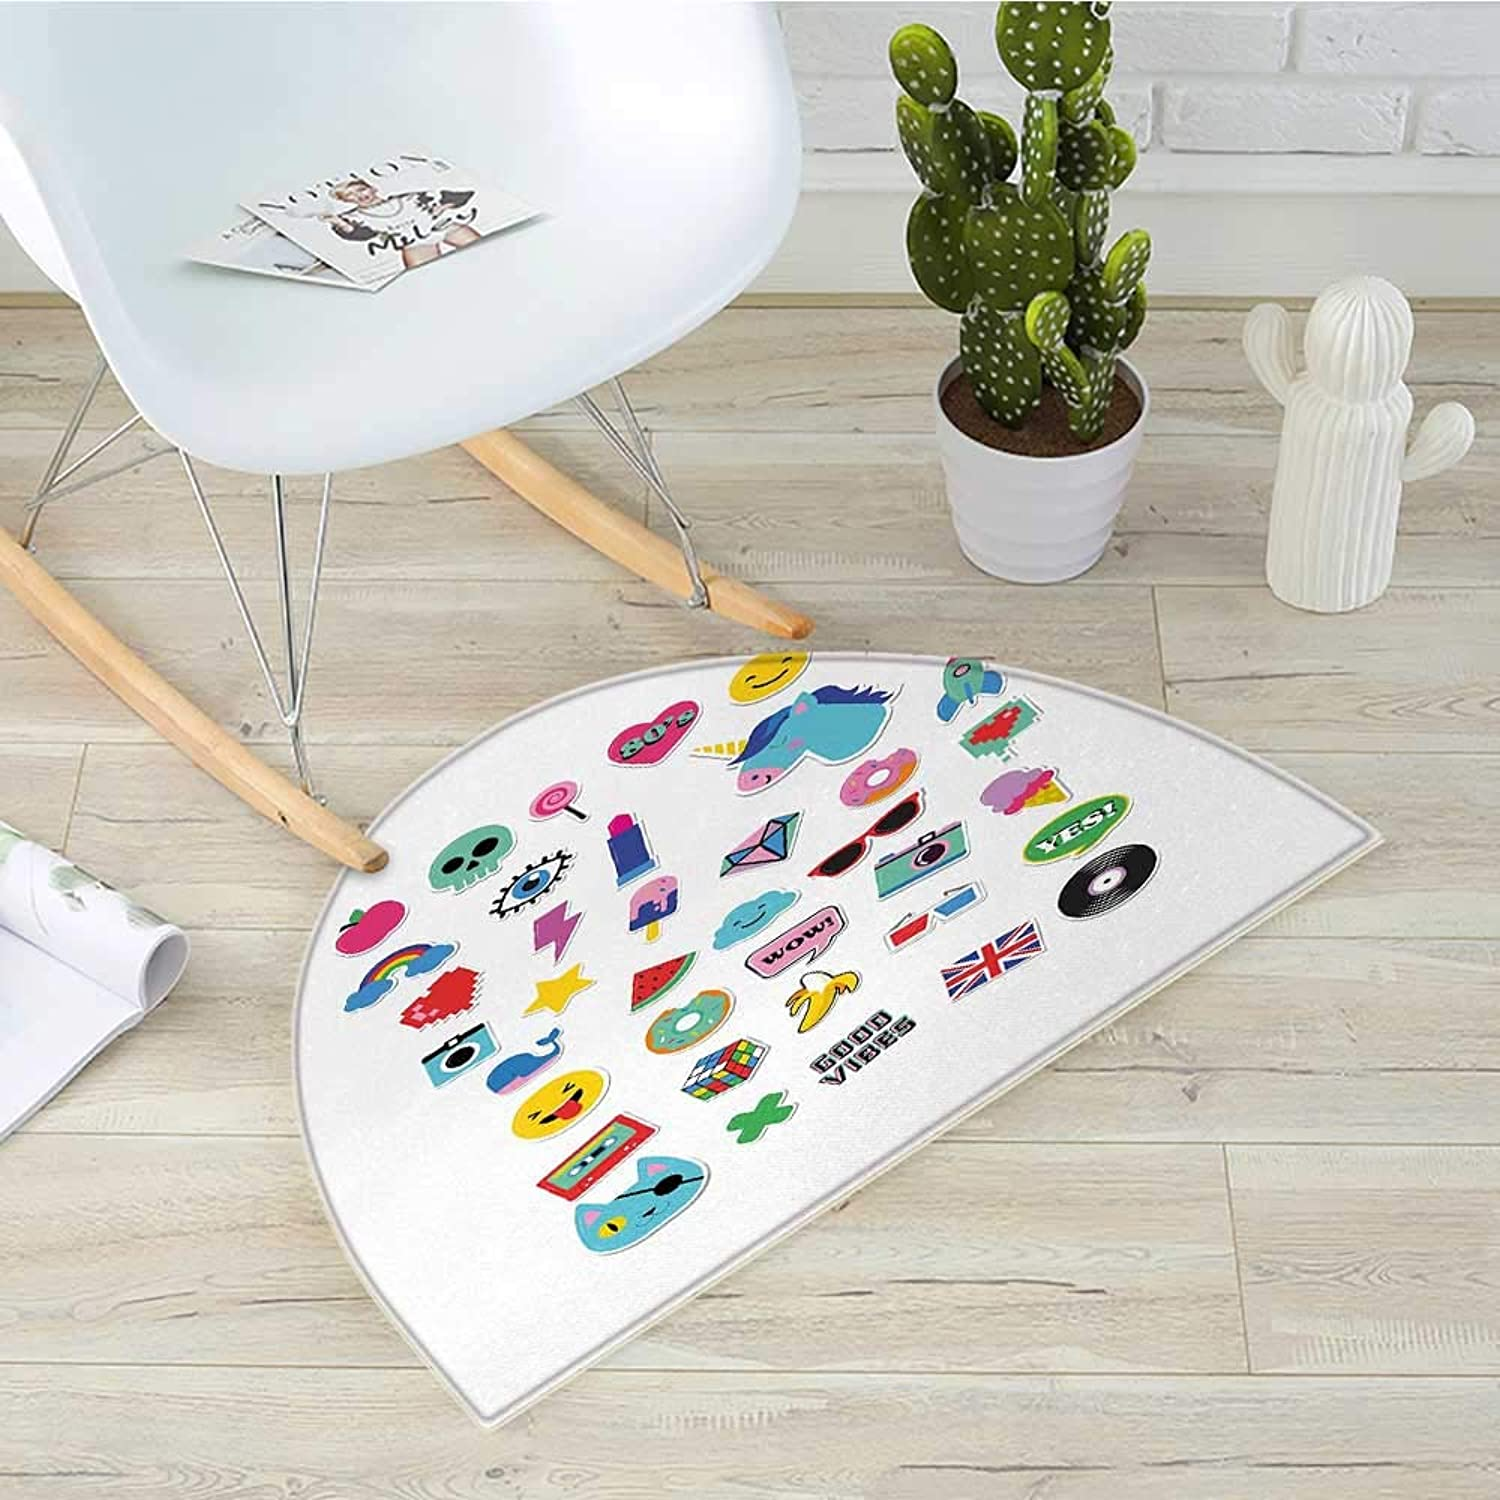 Emoji Semicircular CushionPop Culture Elements Good Vibes Ice Cream Rocket Donut Star Cartoon Style Drawing Entry Door Mat H 43.3  xD 64.9  Multicolor